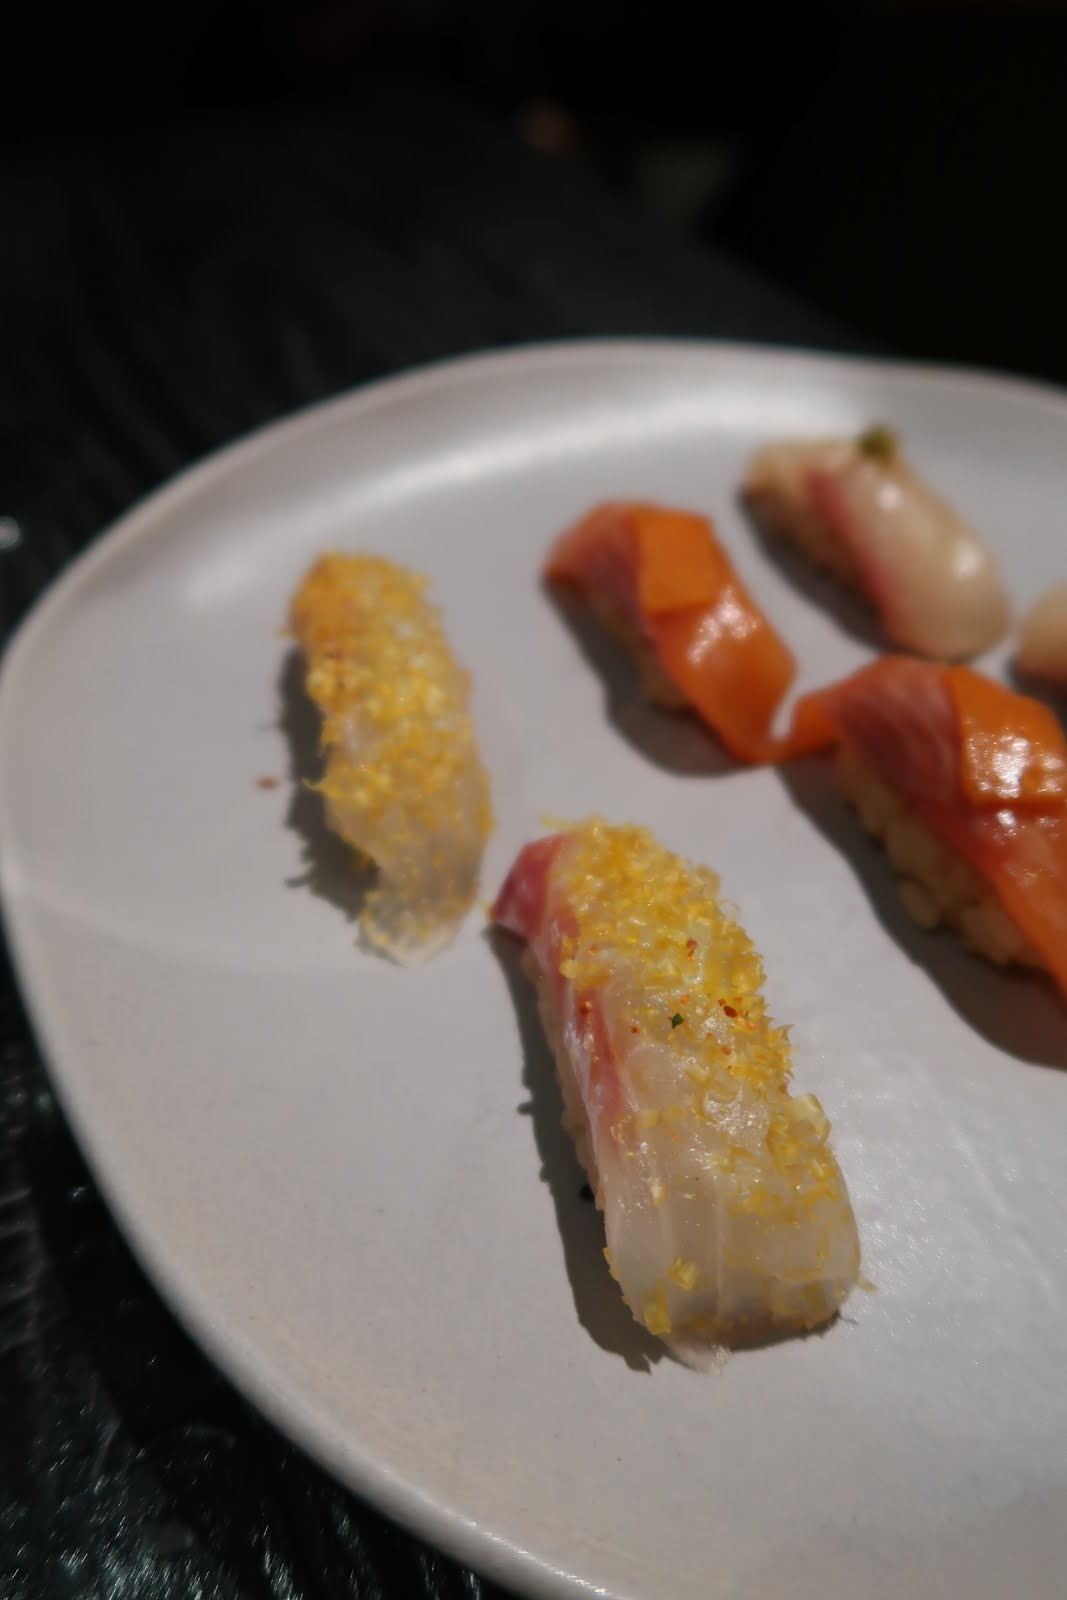 The first set of nigiri from our omakase tasting at Robin.